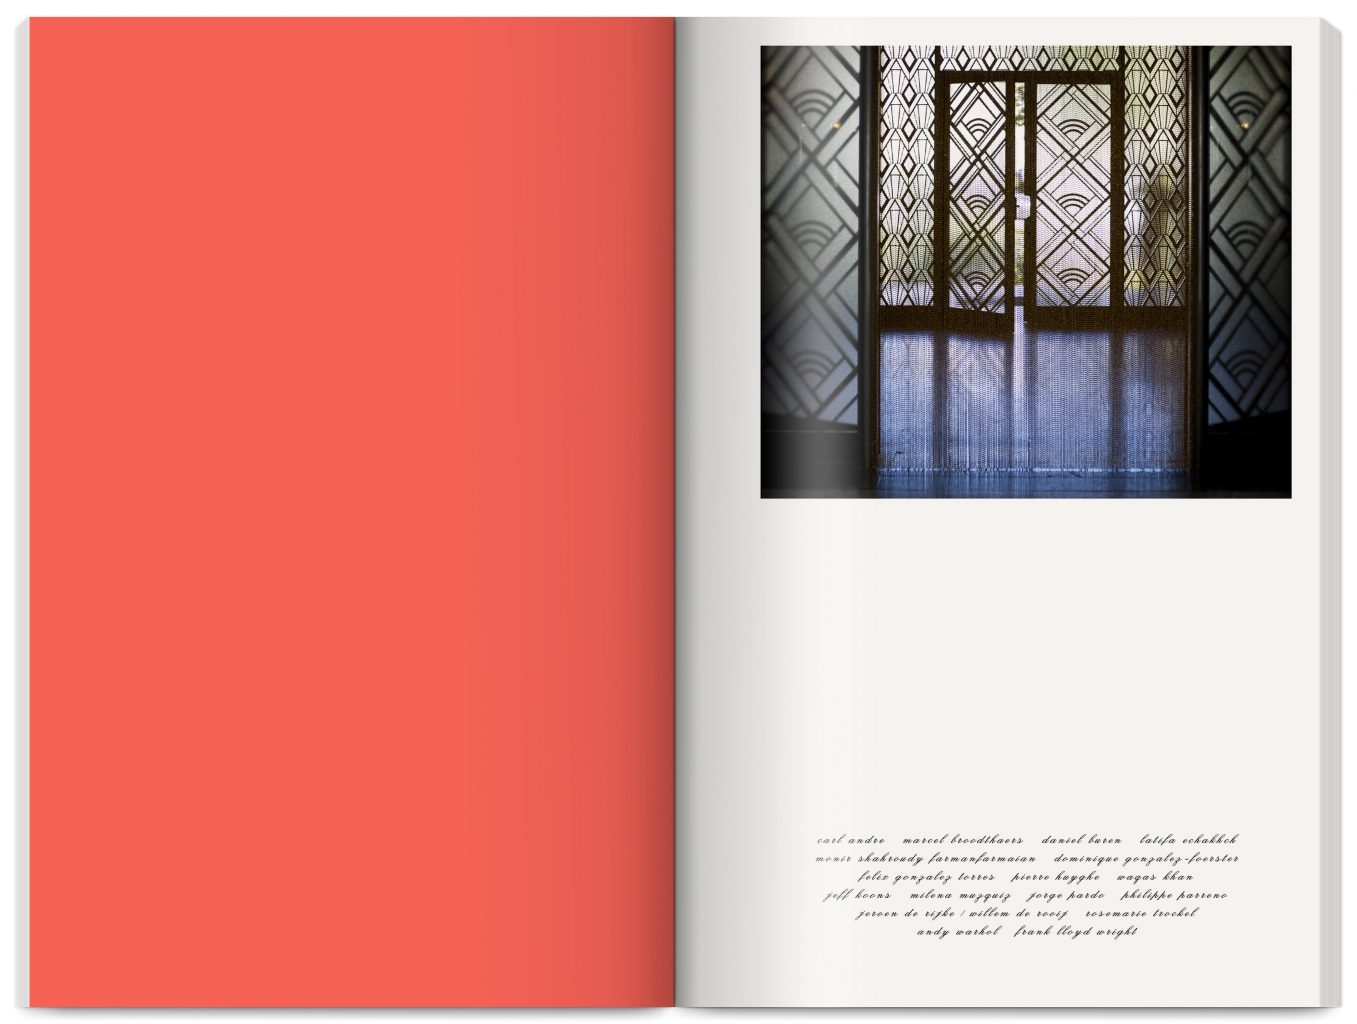 Publication Decor edited by Tino Sehgal, Dorothea von Hantelmann, Asad Raza, published by Villa Empain Fondation Boghossian, designed by In the shade of a tree studio, founded by Sophie Demay and Maël Fournier Comte.